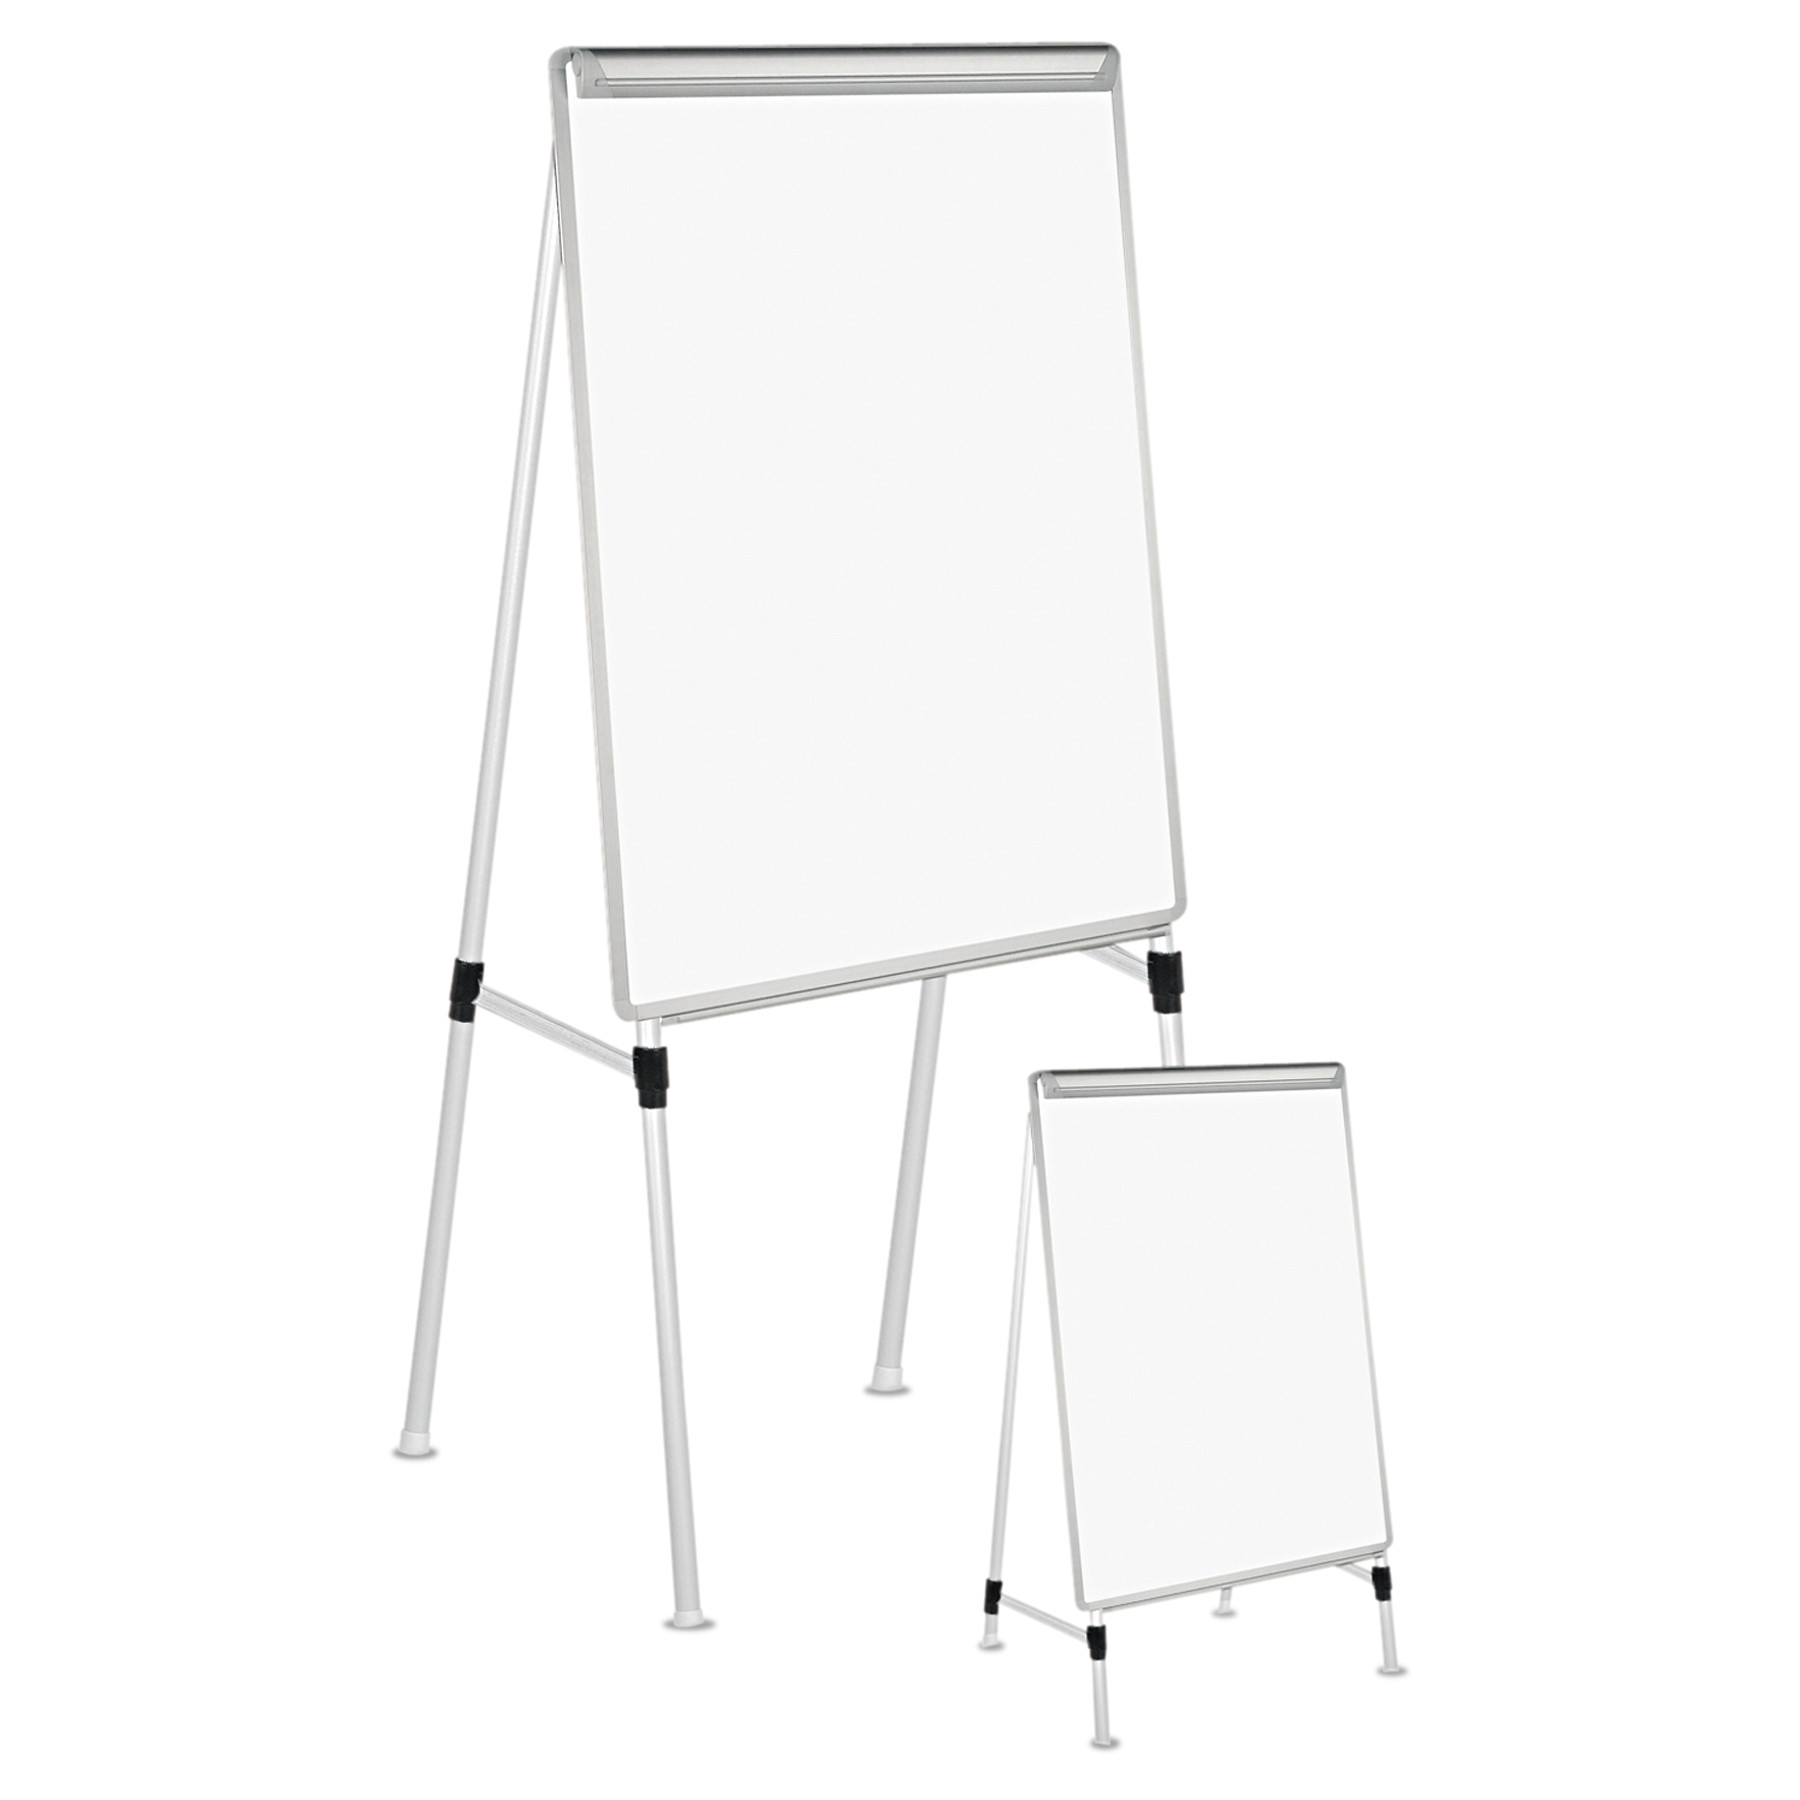 Floor easel walmart crayola pink double easel stand up for White stand up mirror